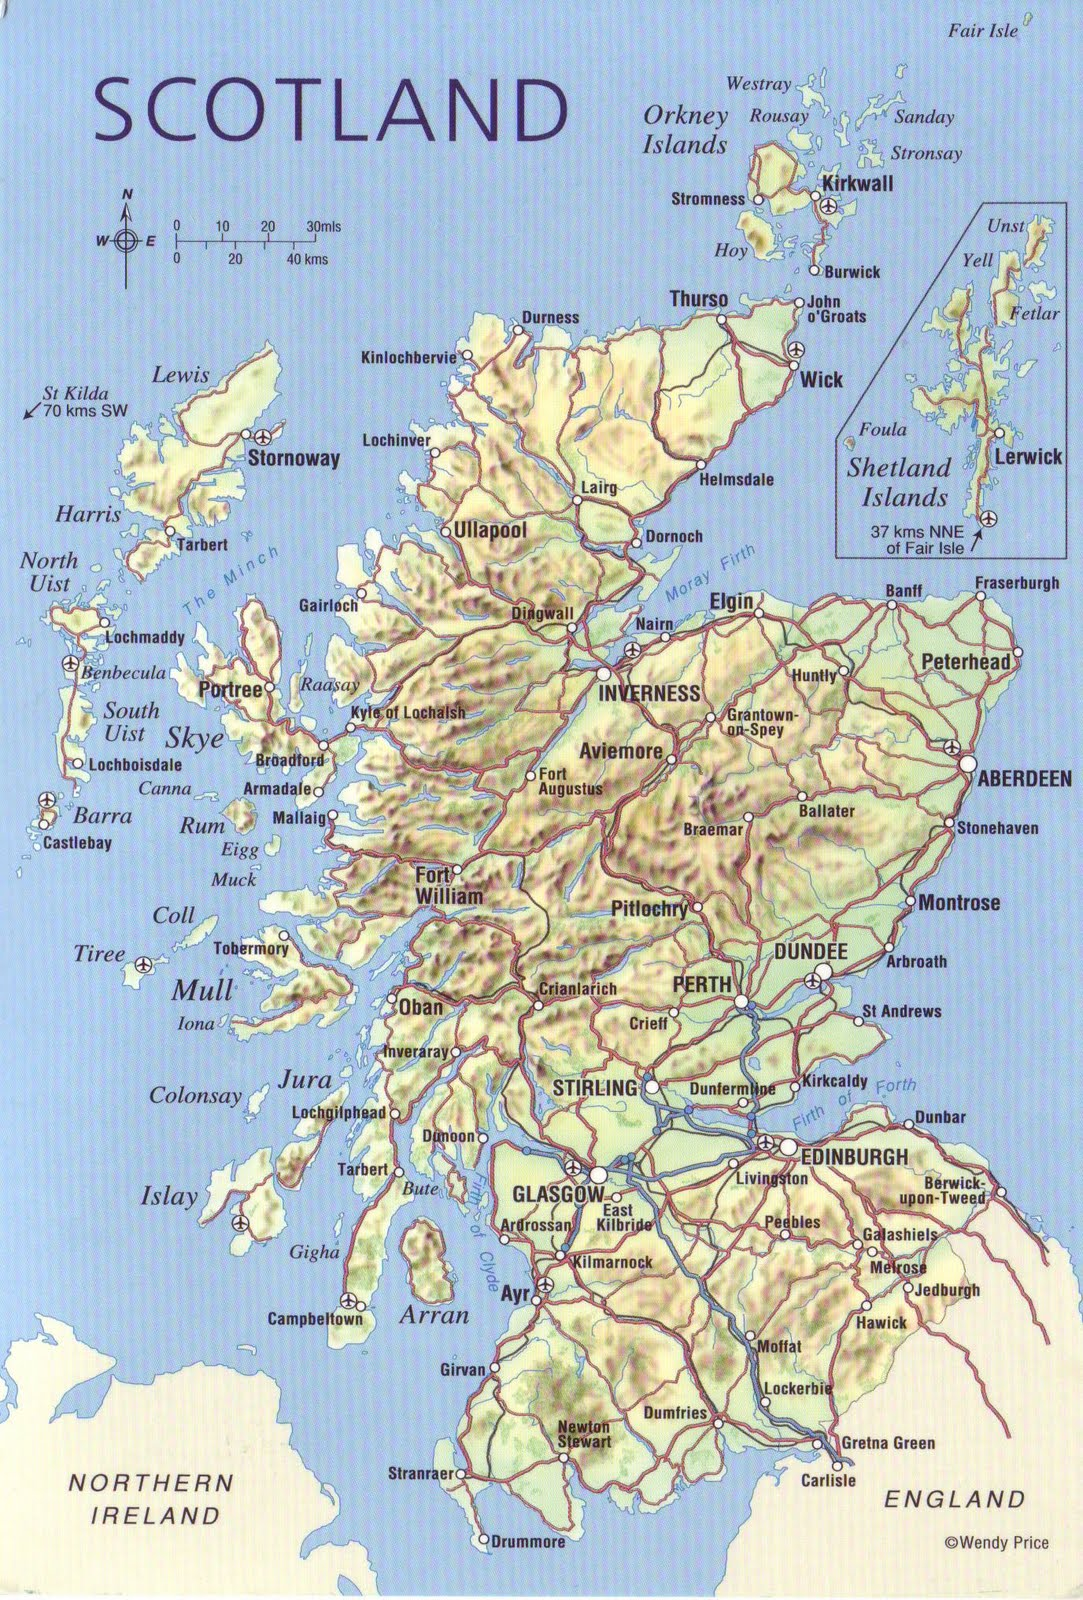 The World in Postcards Sabine 39 s Blog Scotland Map May 12 2010